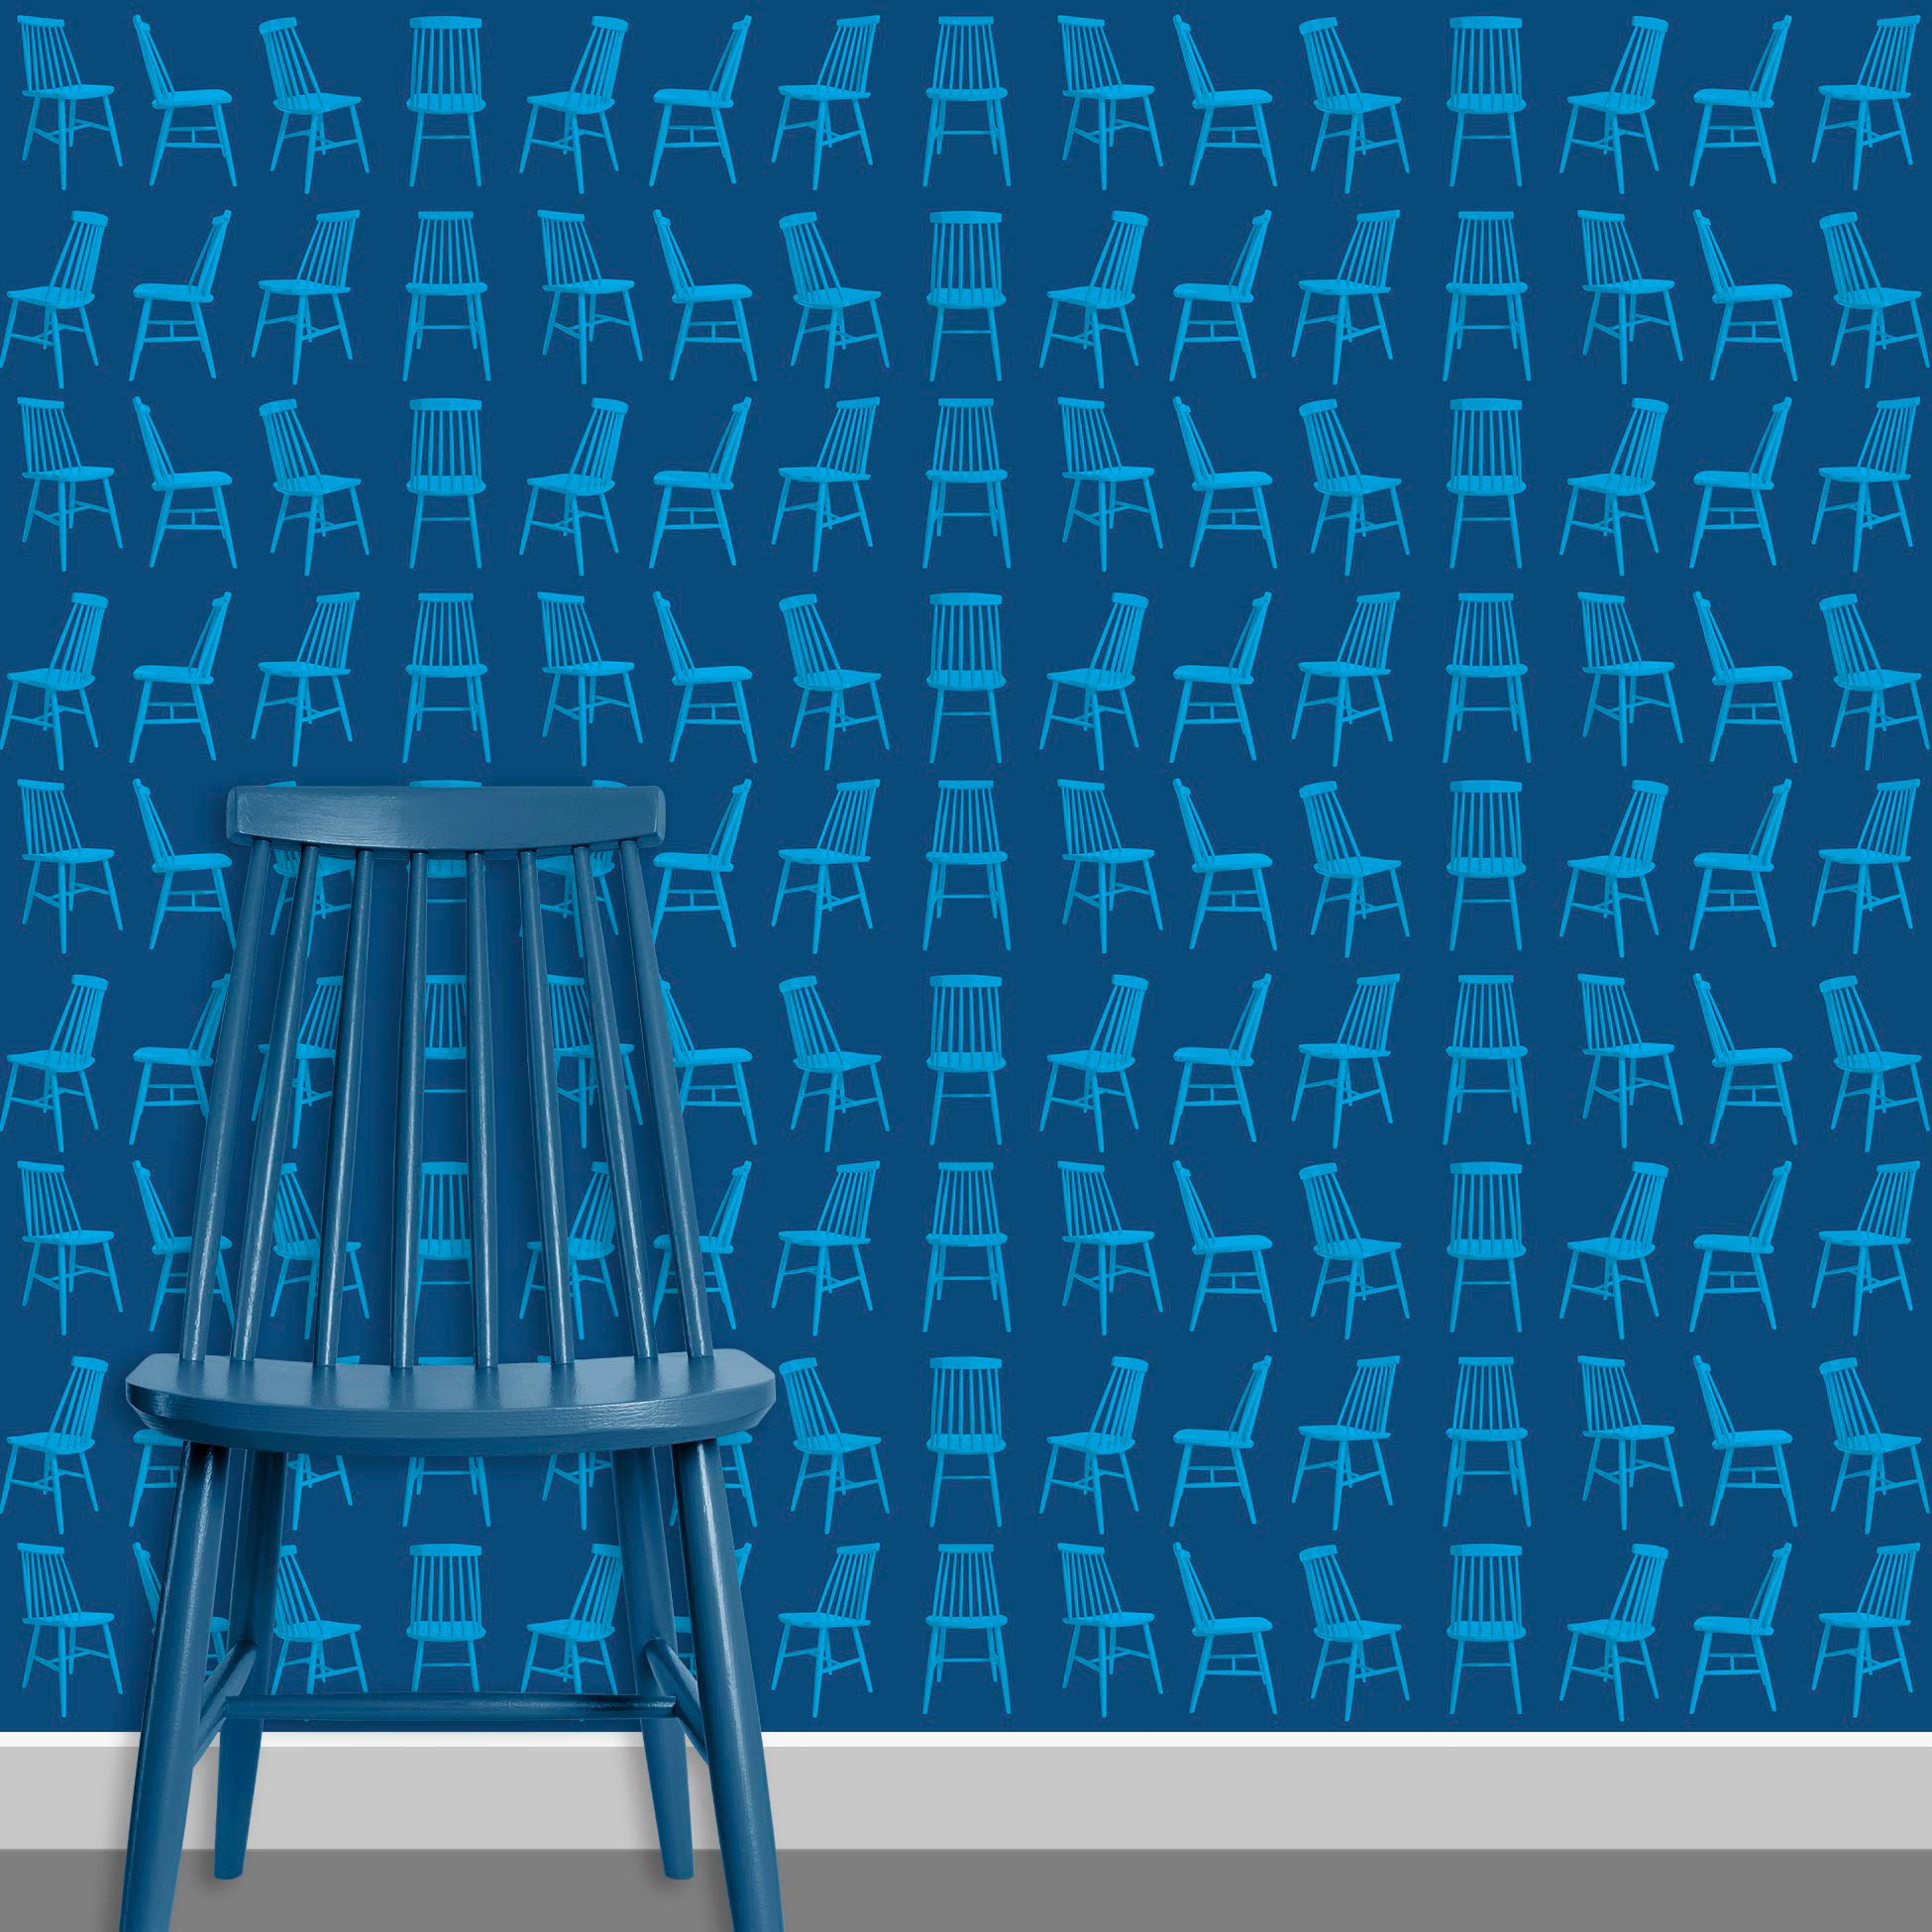 Contact Page Square - Mid Century Modern Chairs Pattern Design 7